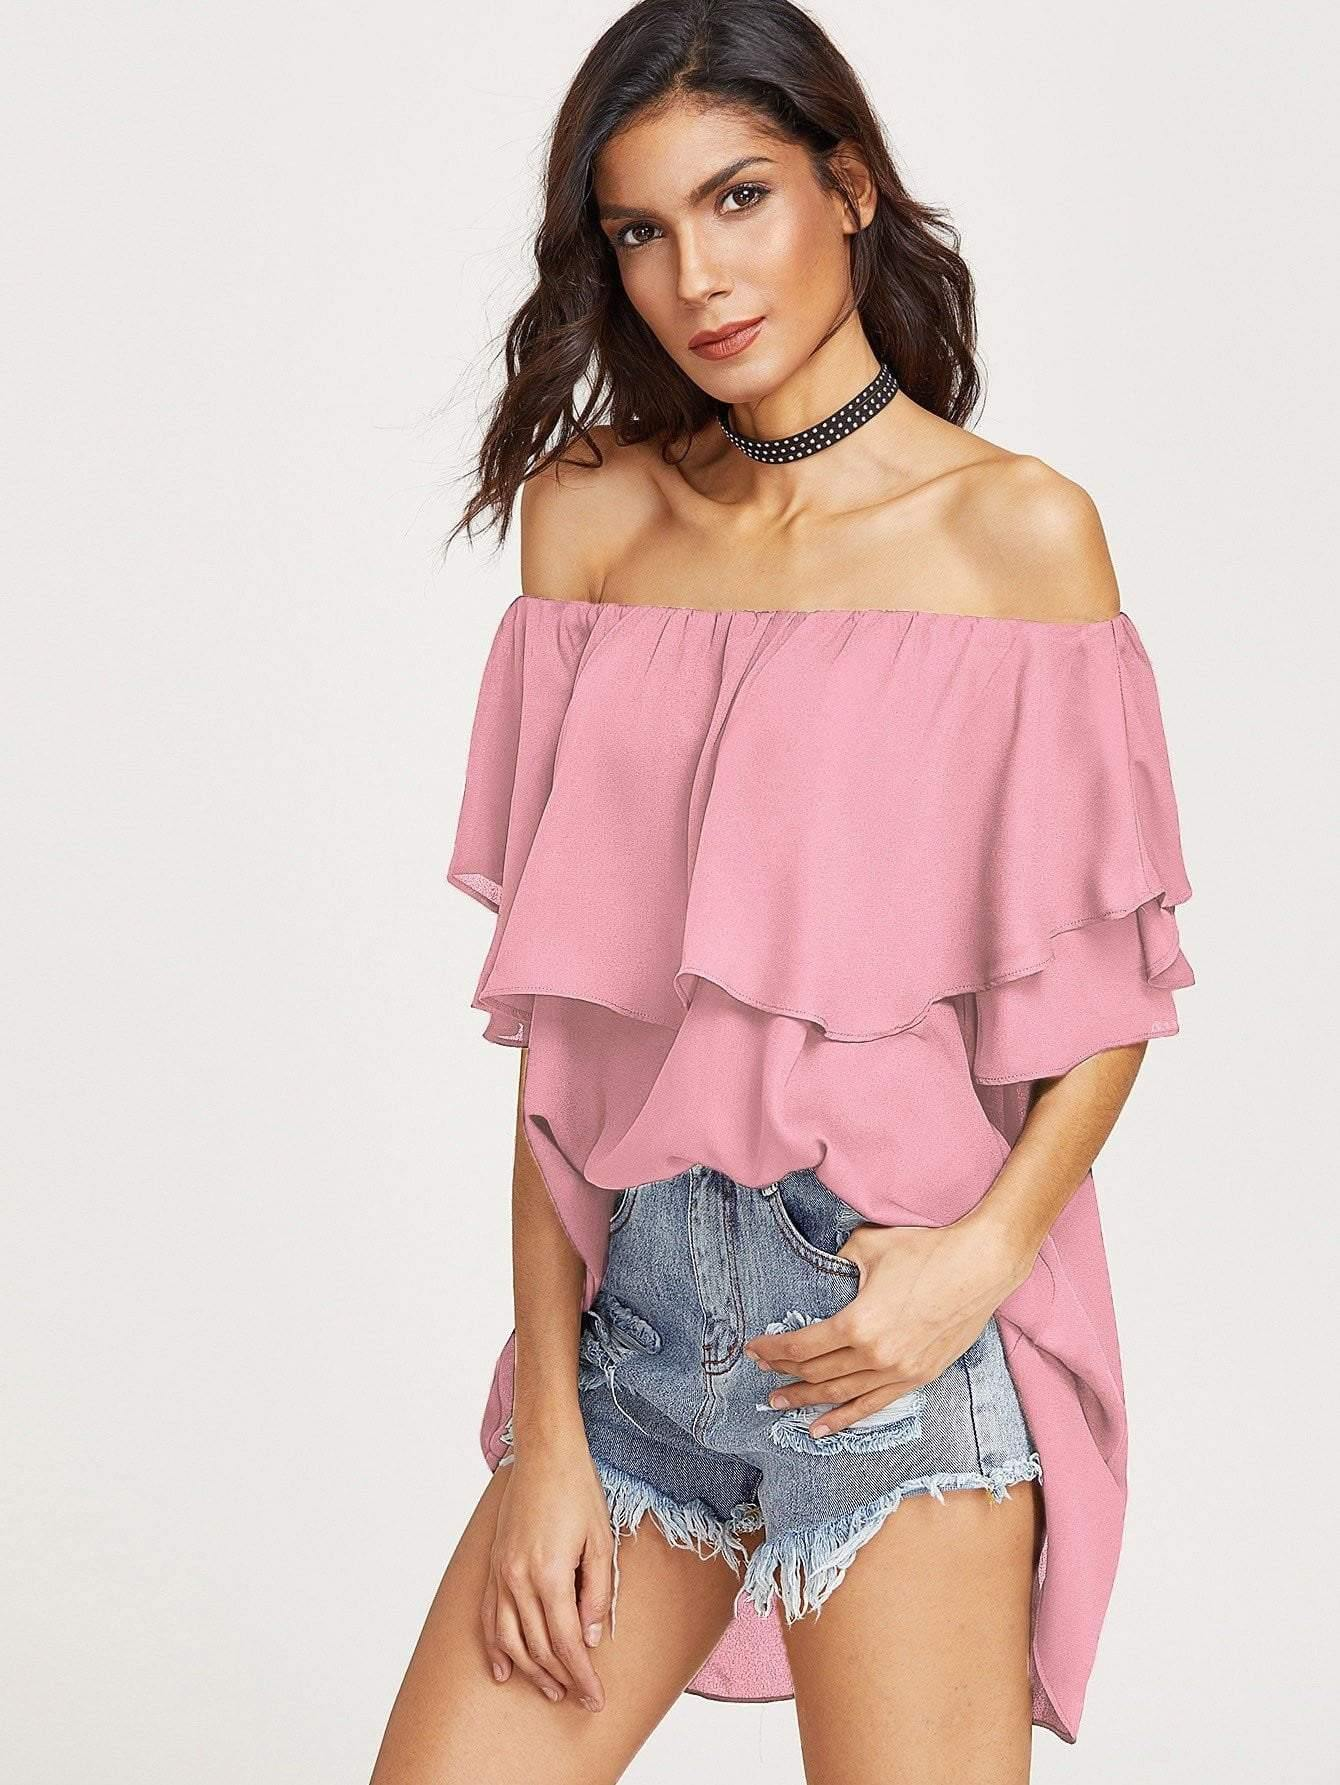 Flounce Layered Neckline High Low Top - Tops - Zooomberg - Zoomberg